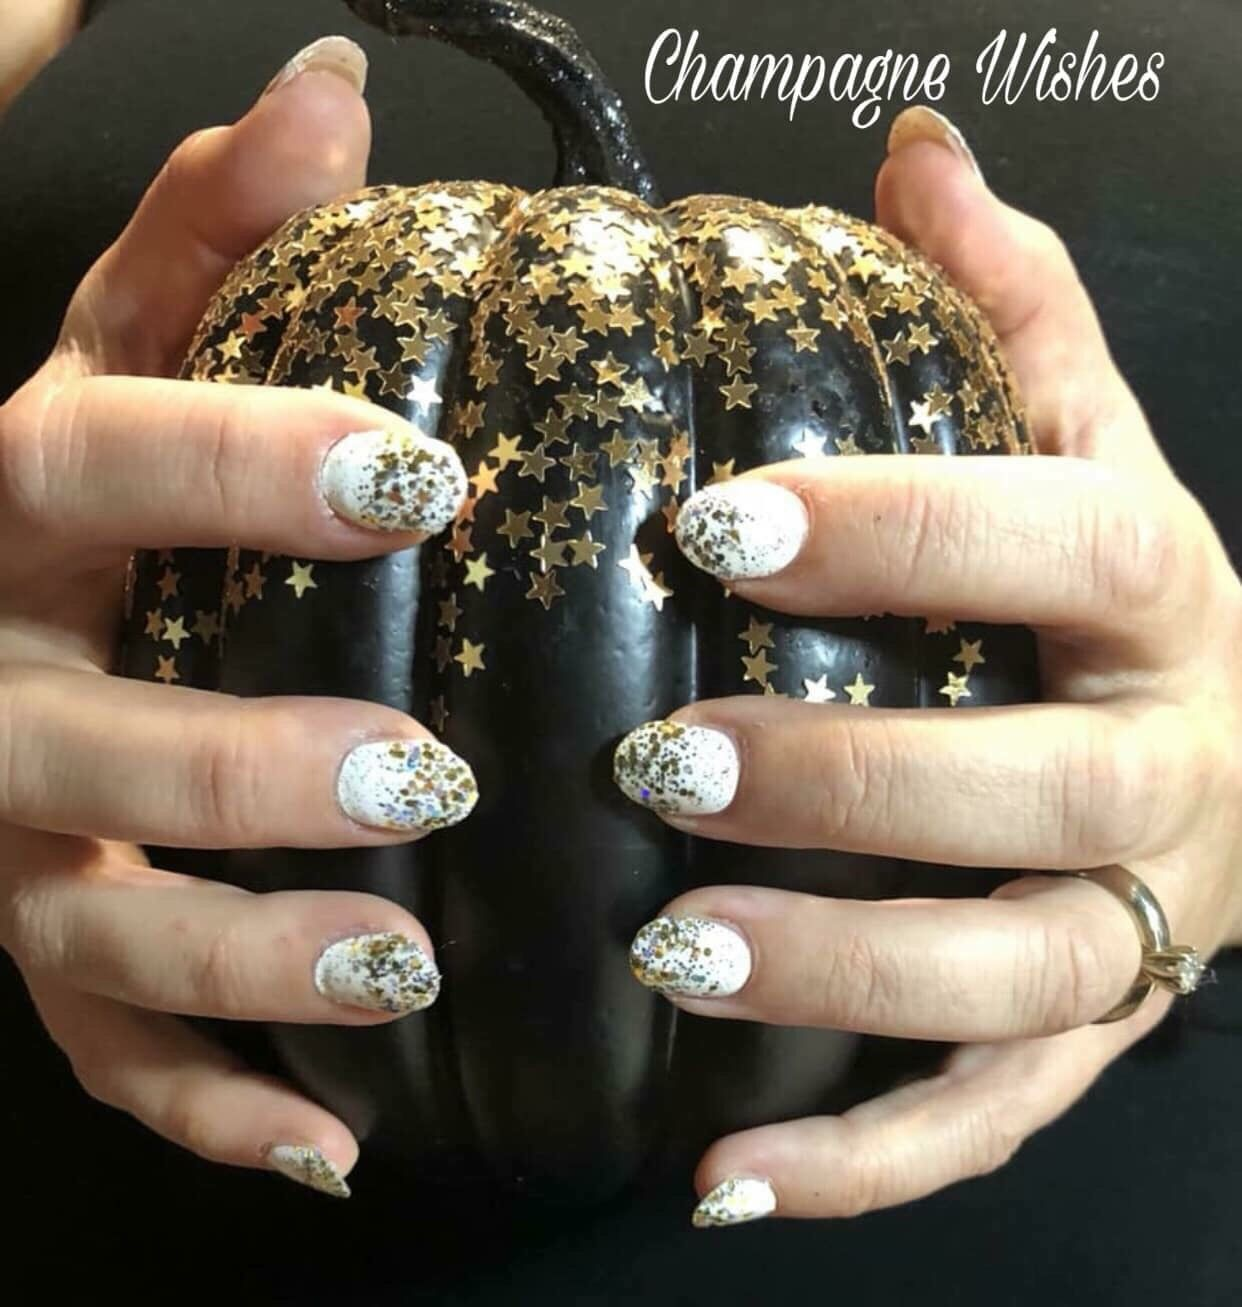 Get Champagne Wishes from Color Street for a sparkly